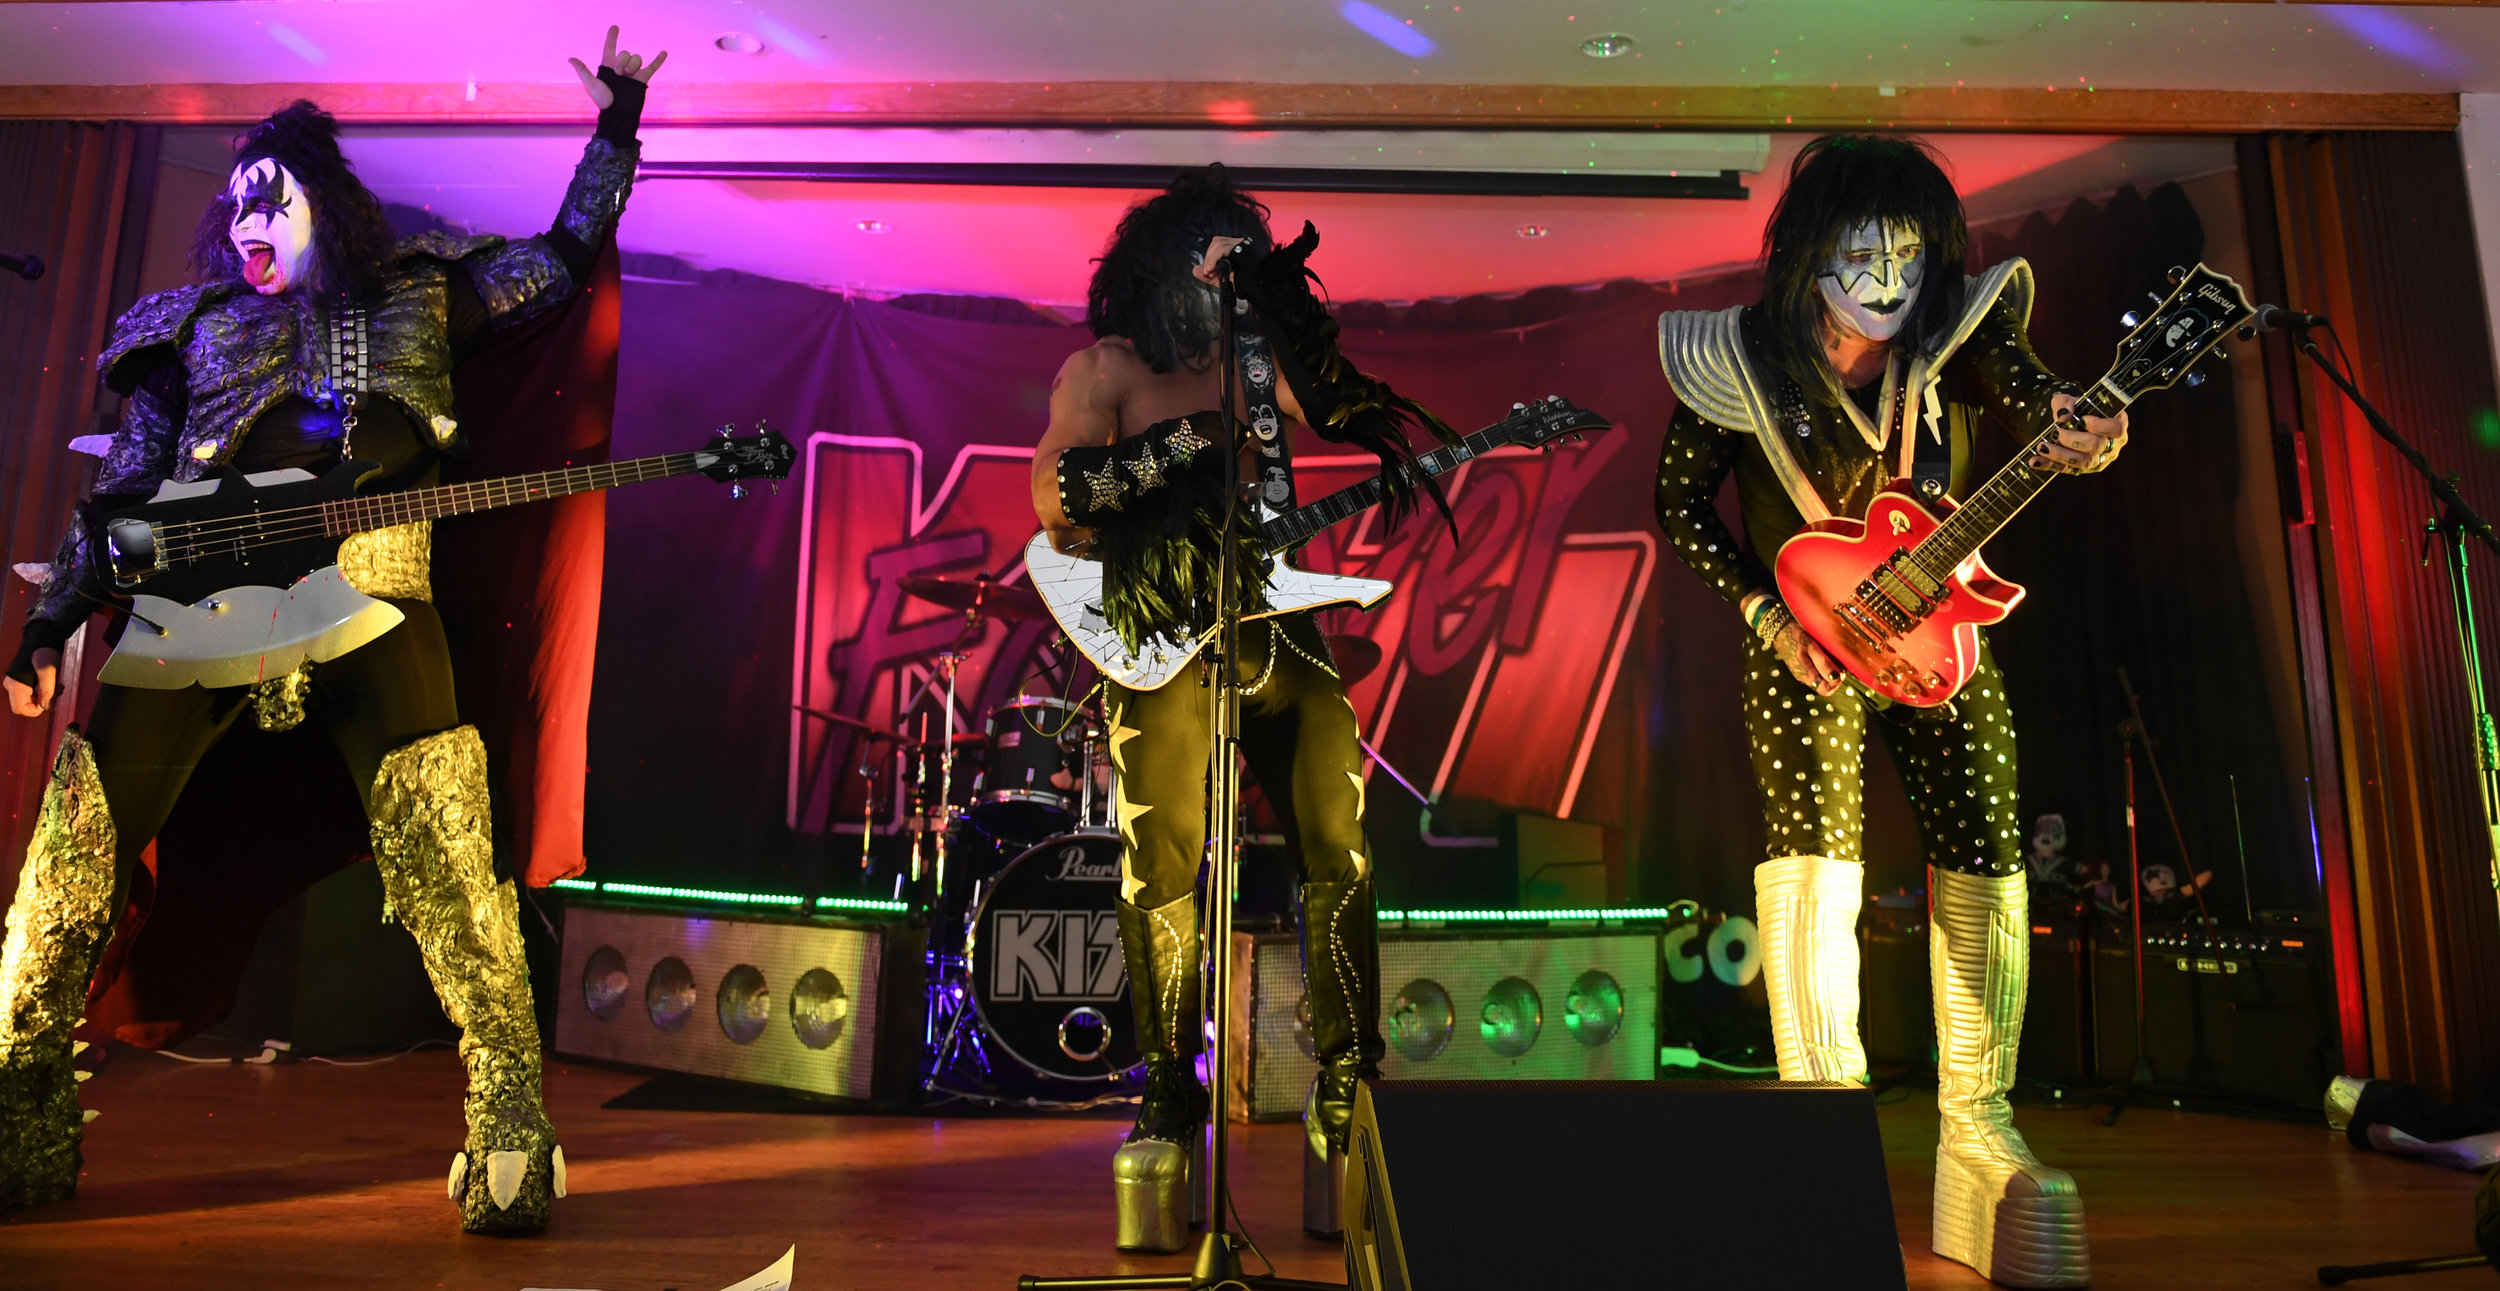 moa--kiss-forever-rock-addiction_45667612572_o.jpg